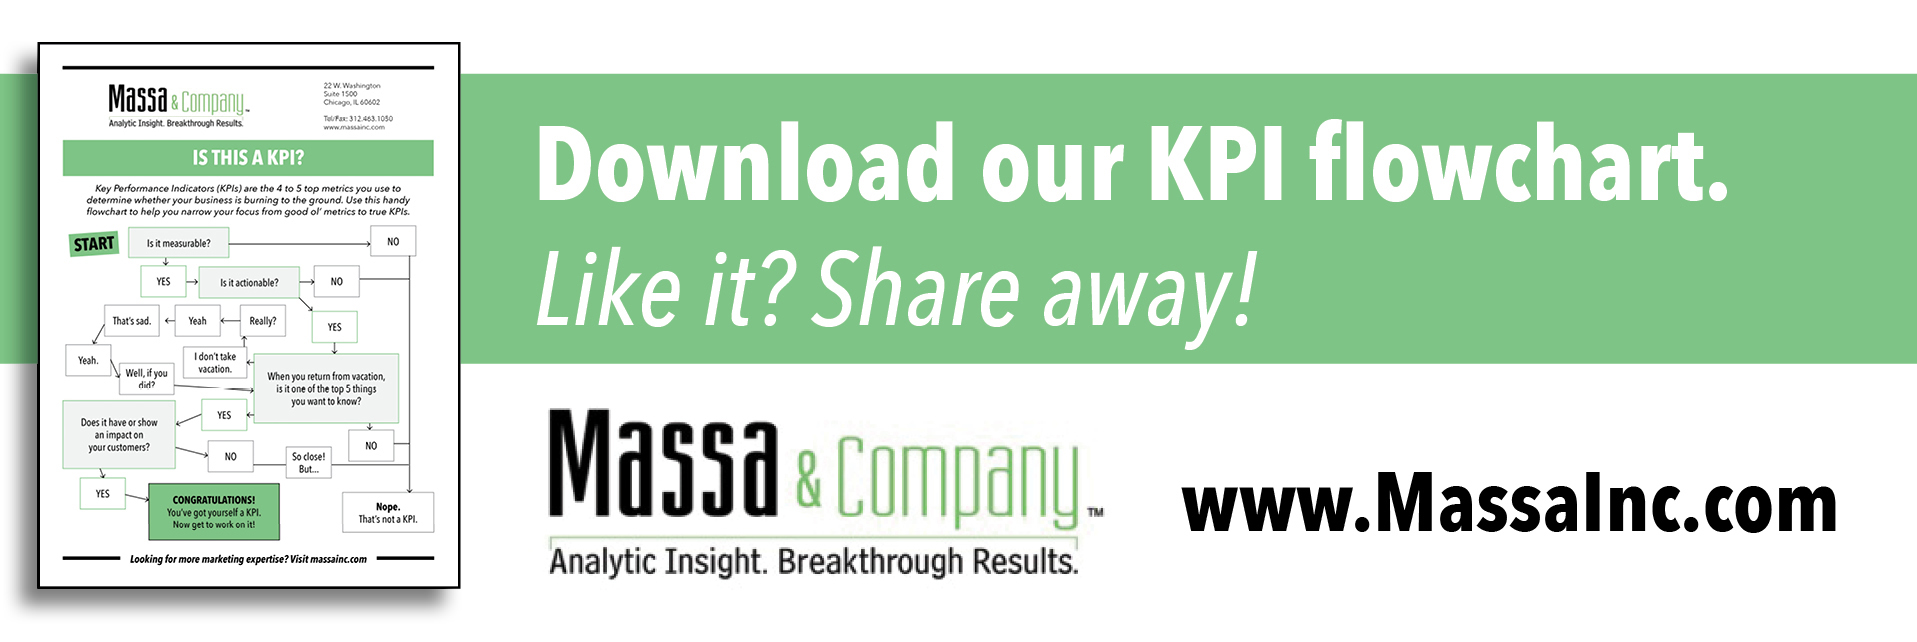 Download our KPI flowchart | Massa & Company